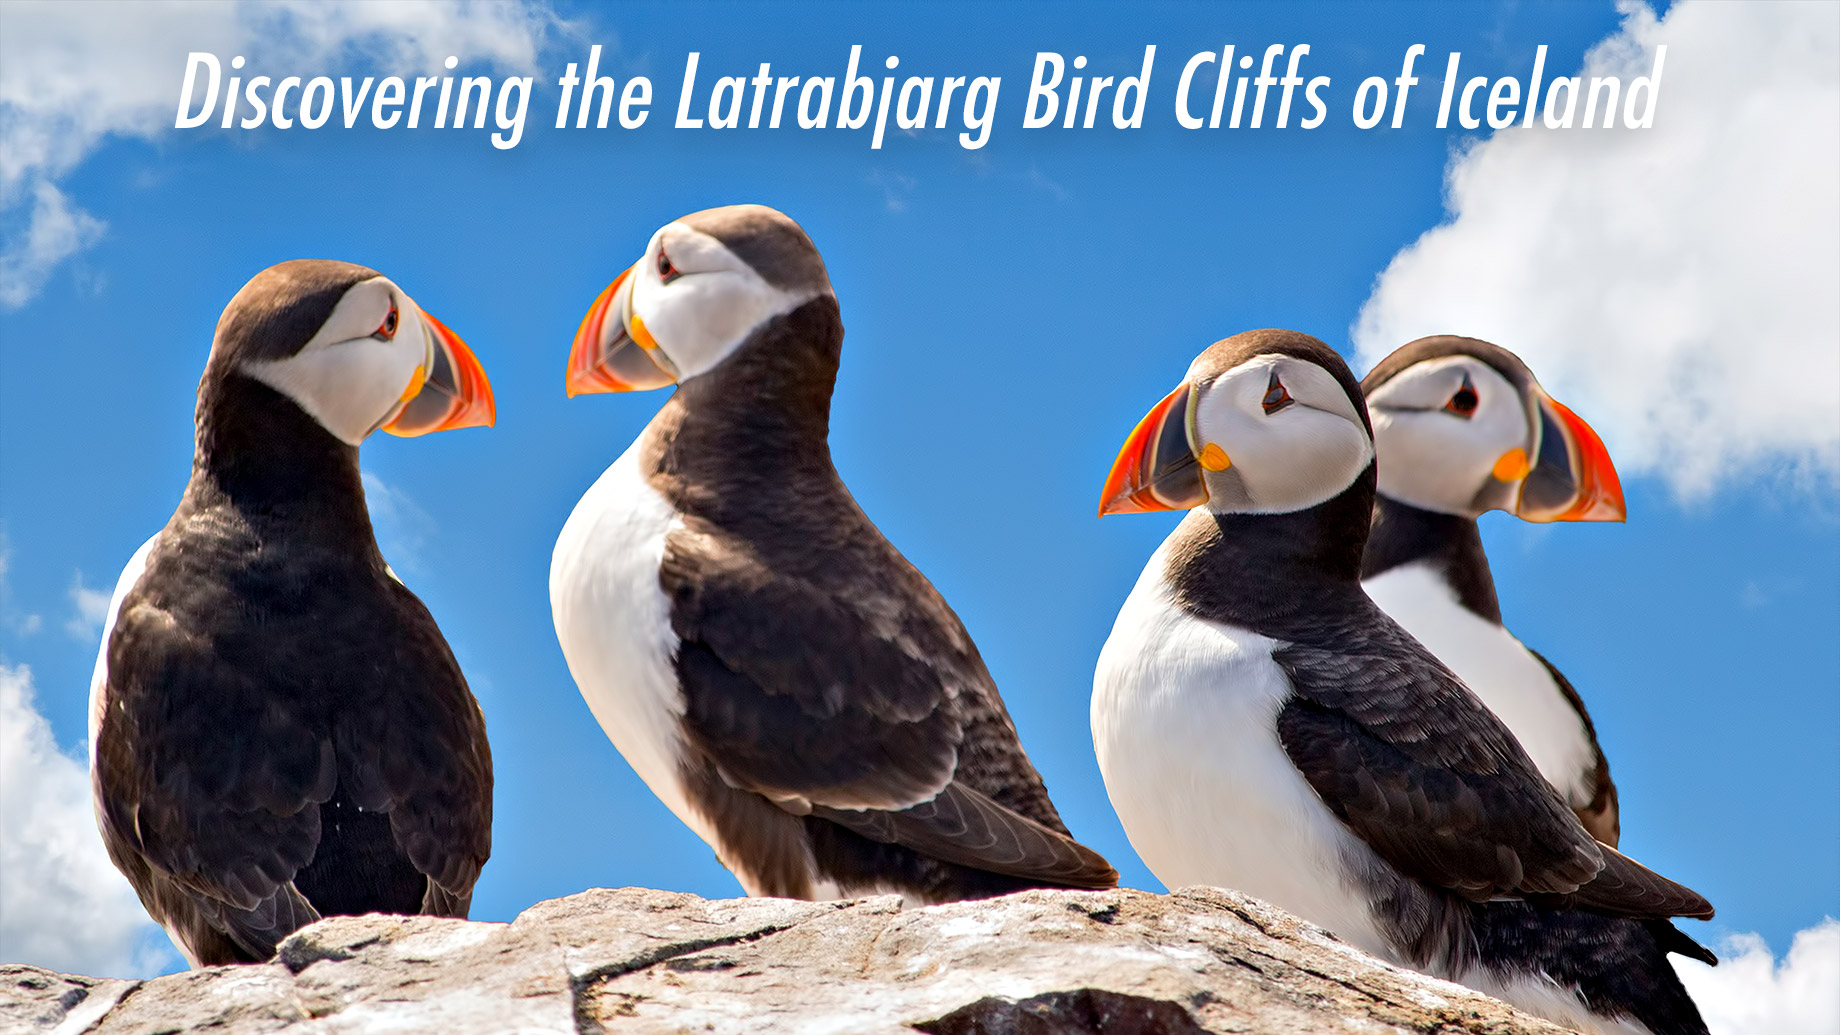 Travel Guide - Discovering the Latrabjarg Bird Cliffs of Iceland